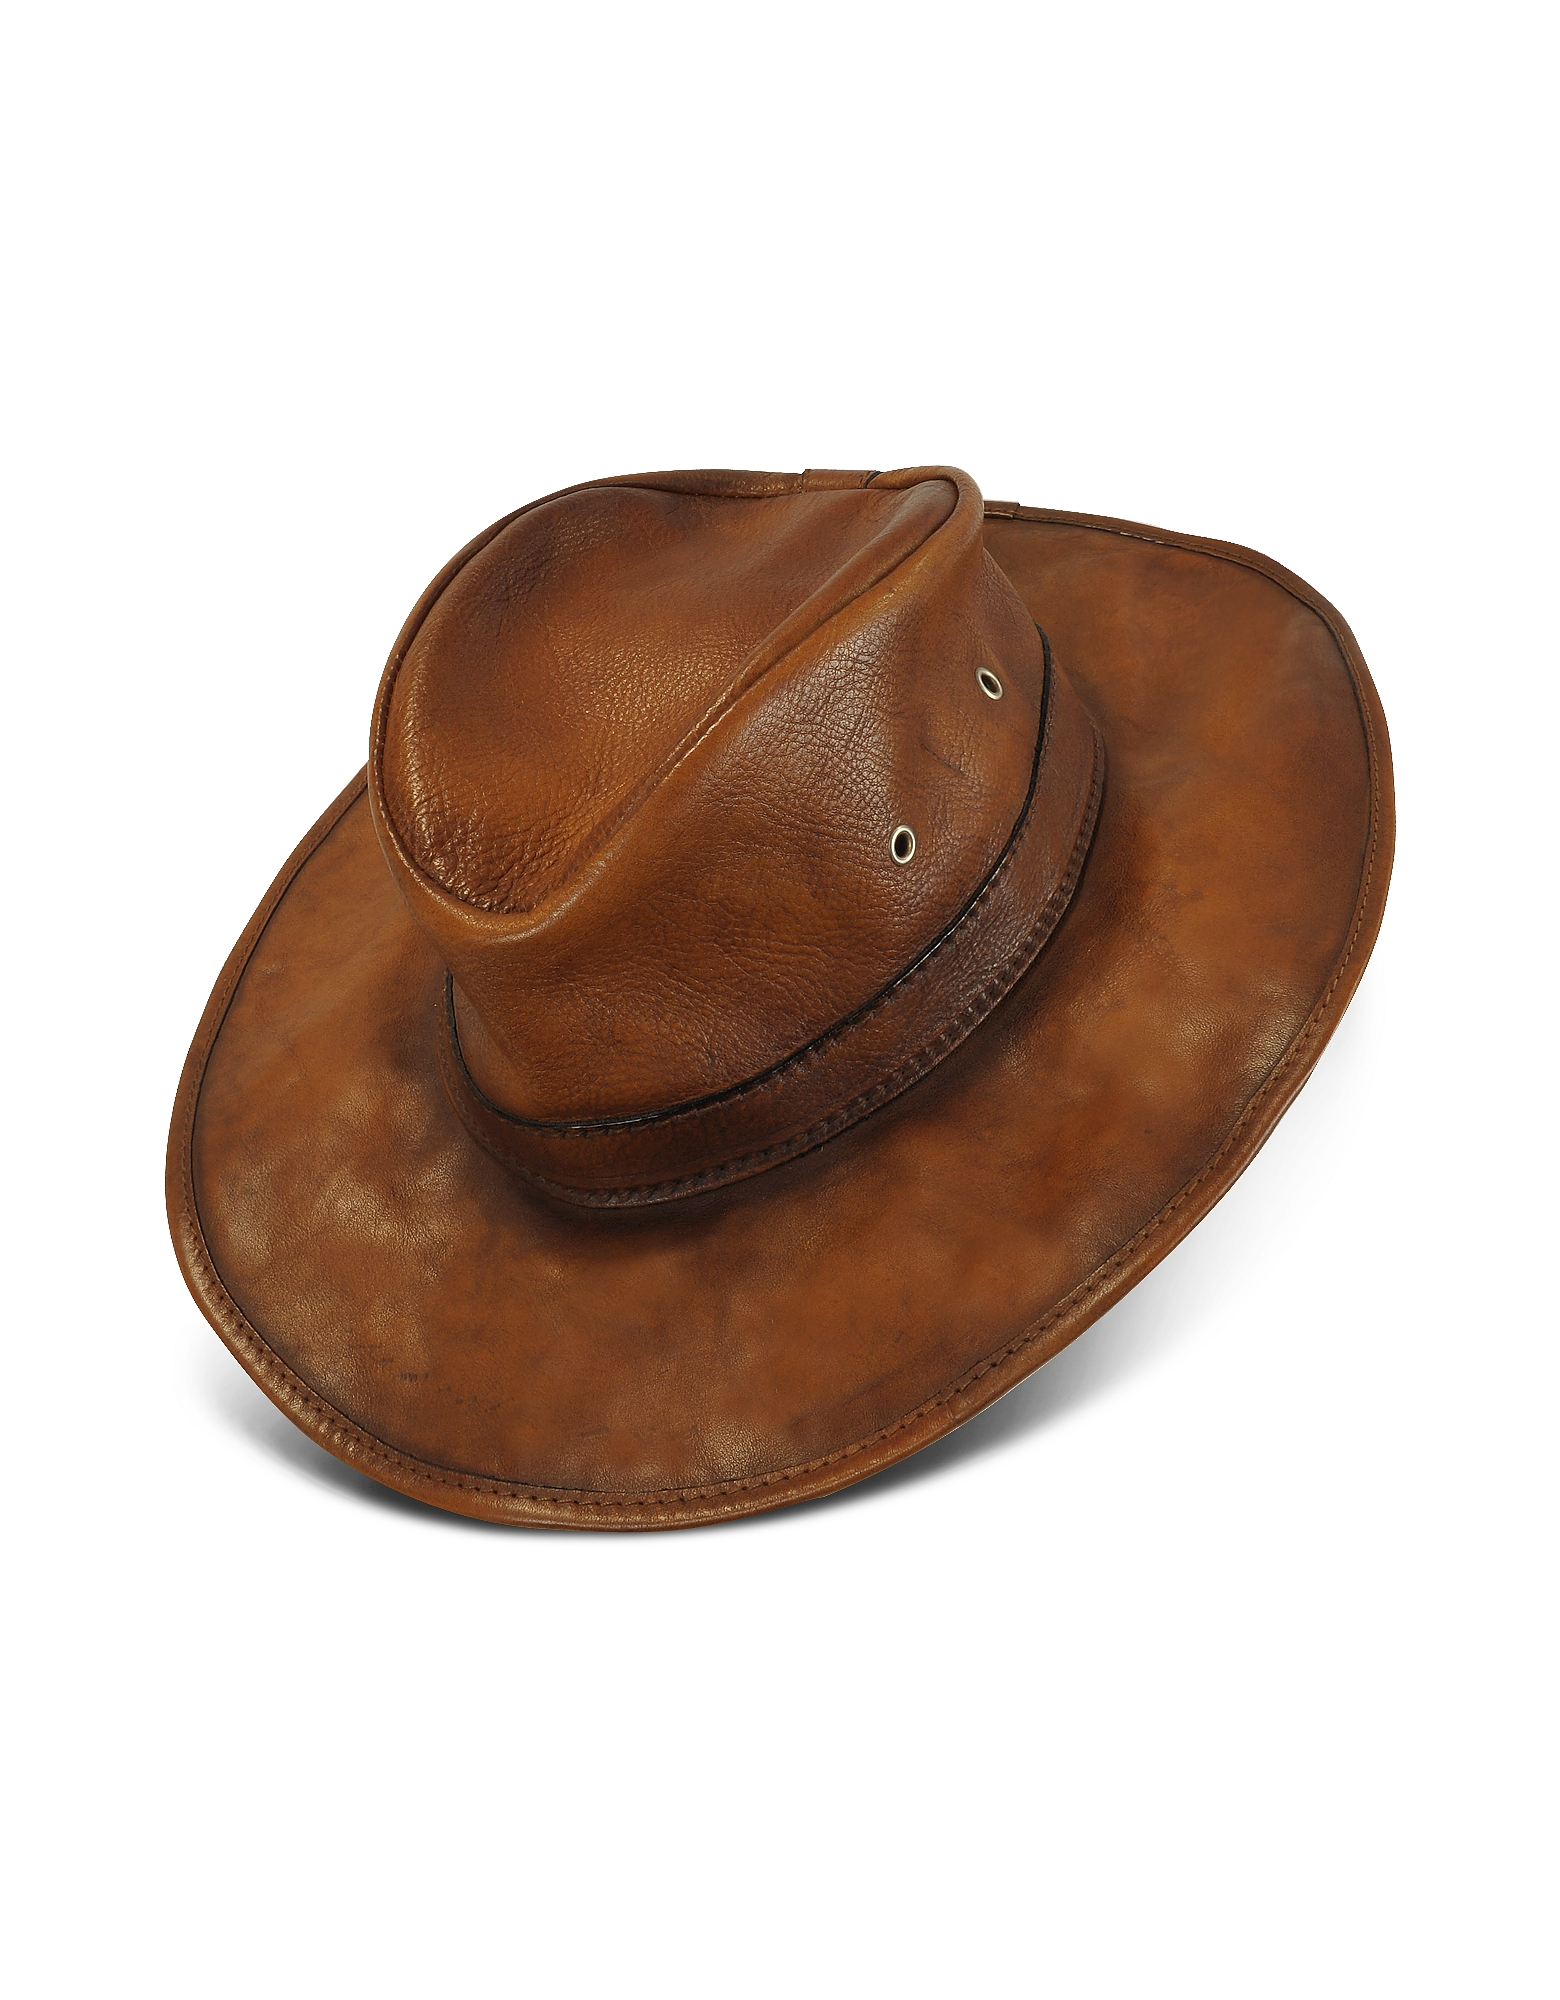 Pratesi Men's Hats, Genuine Leather Hat